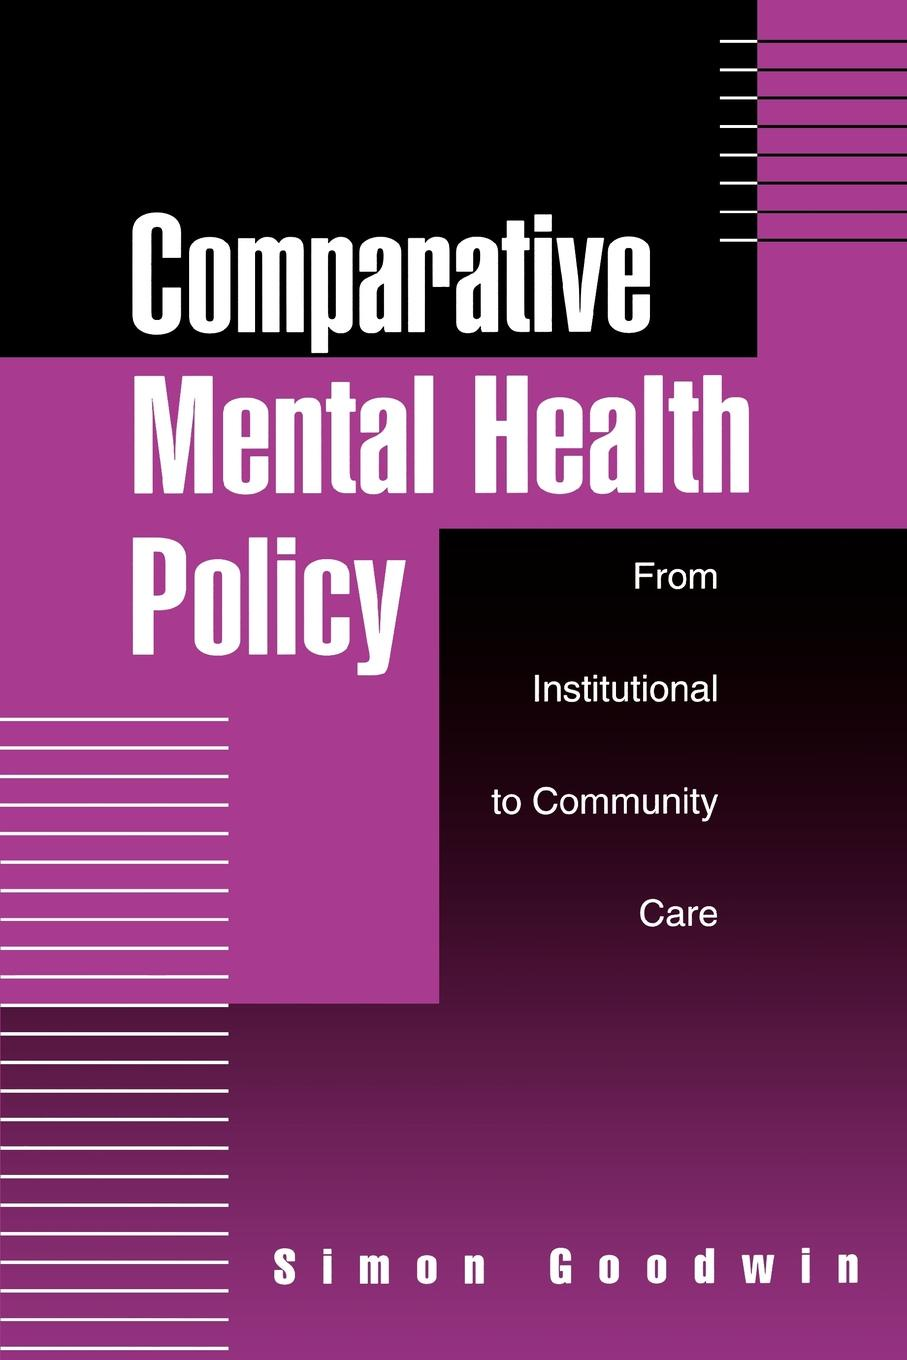 лучшая цена Simon Goodwin Comparative Mental Health Policy. From Institutional to Community Care